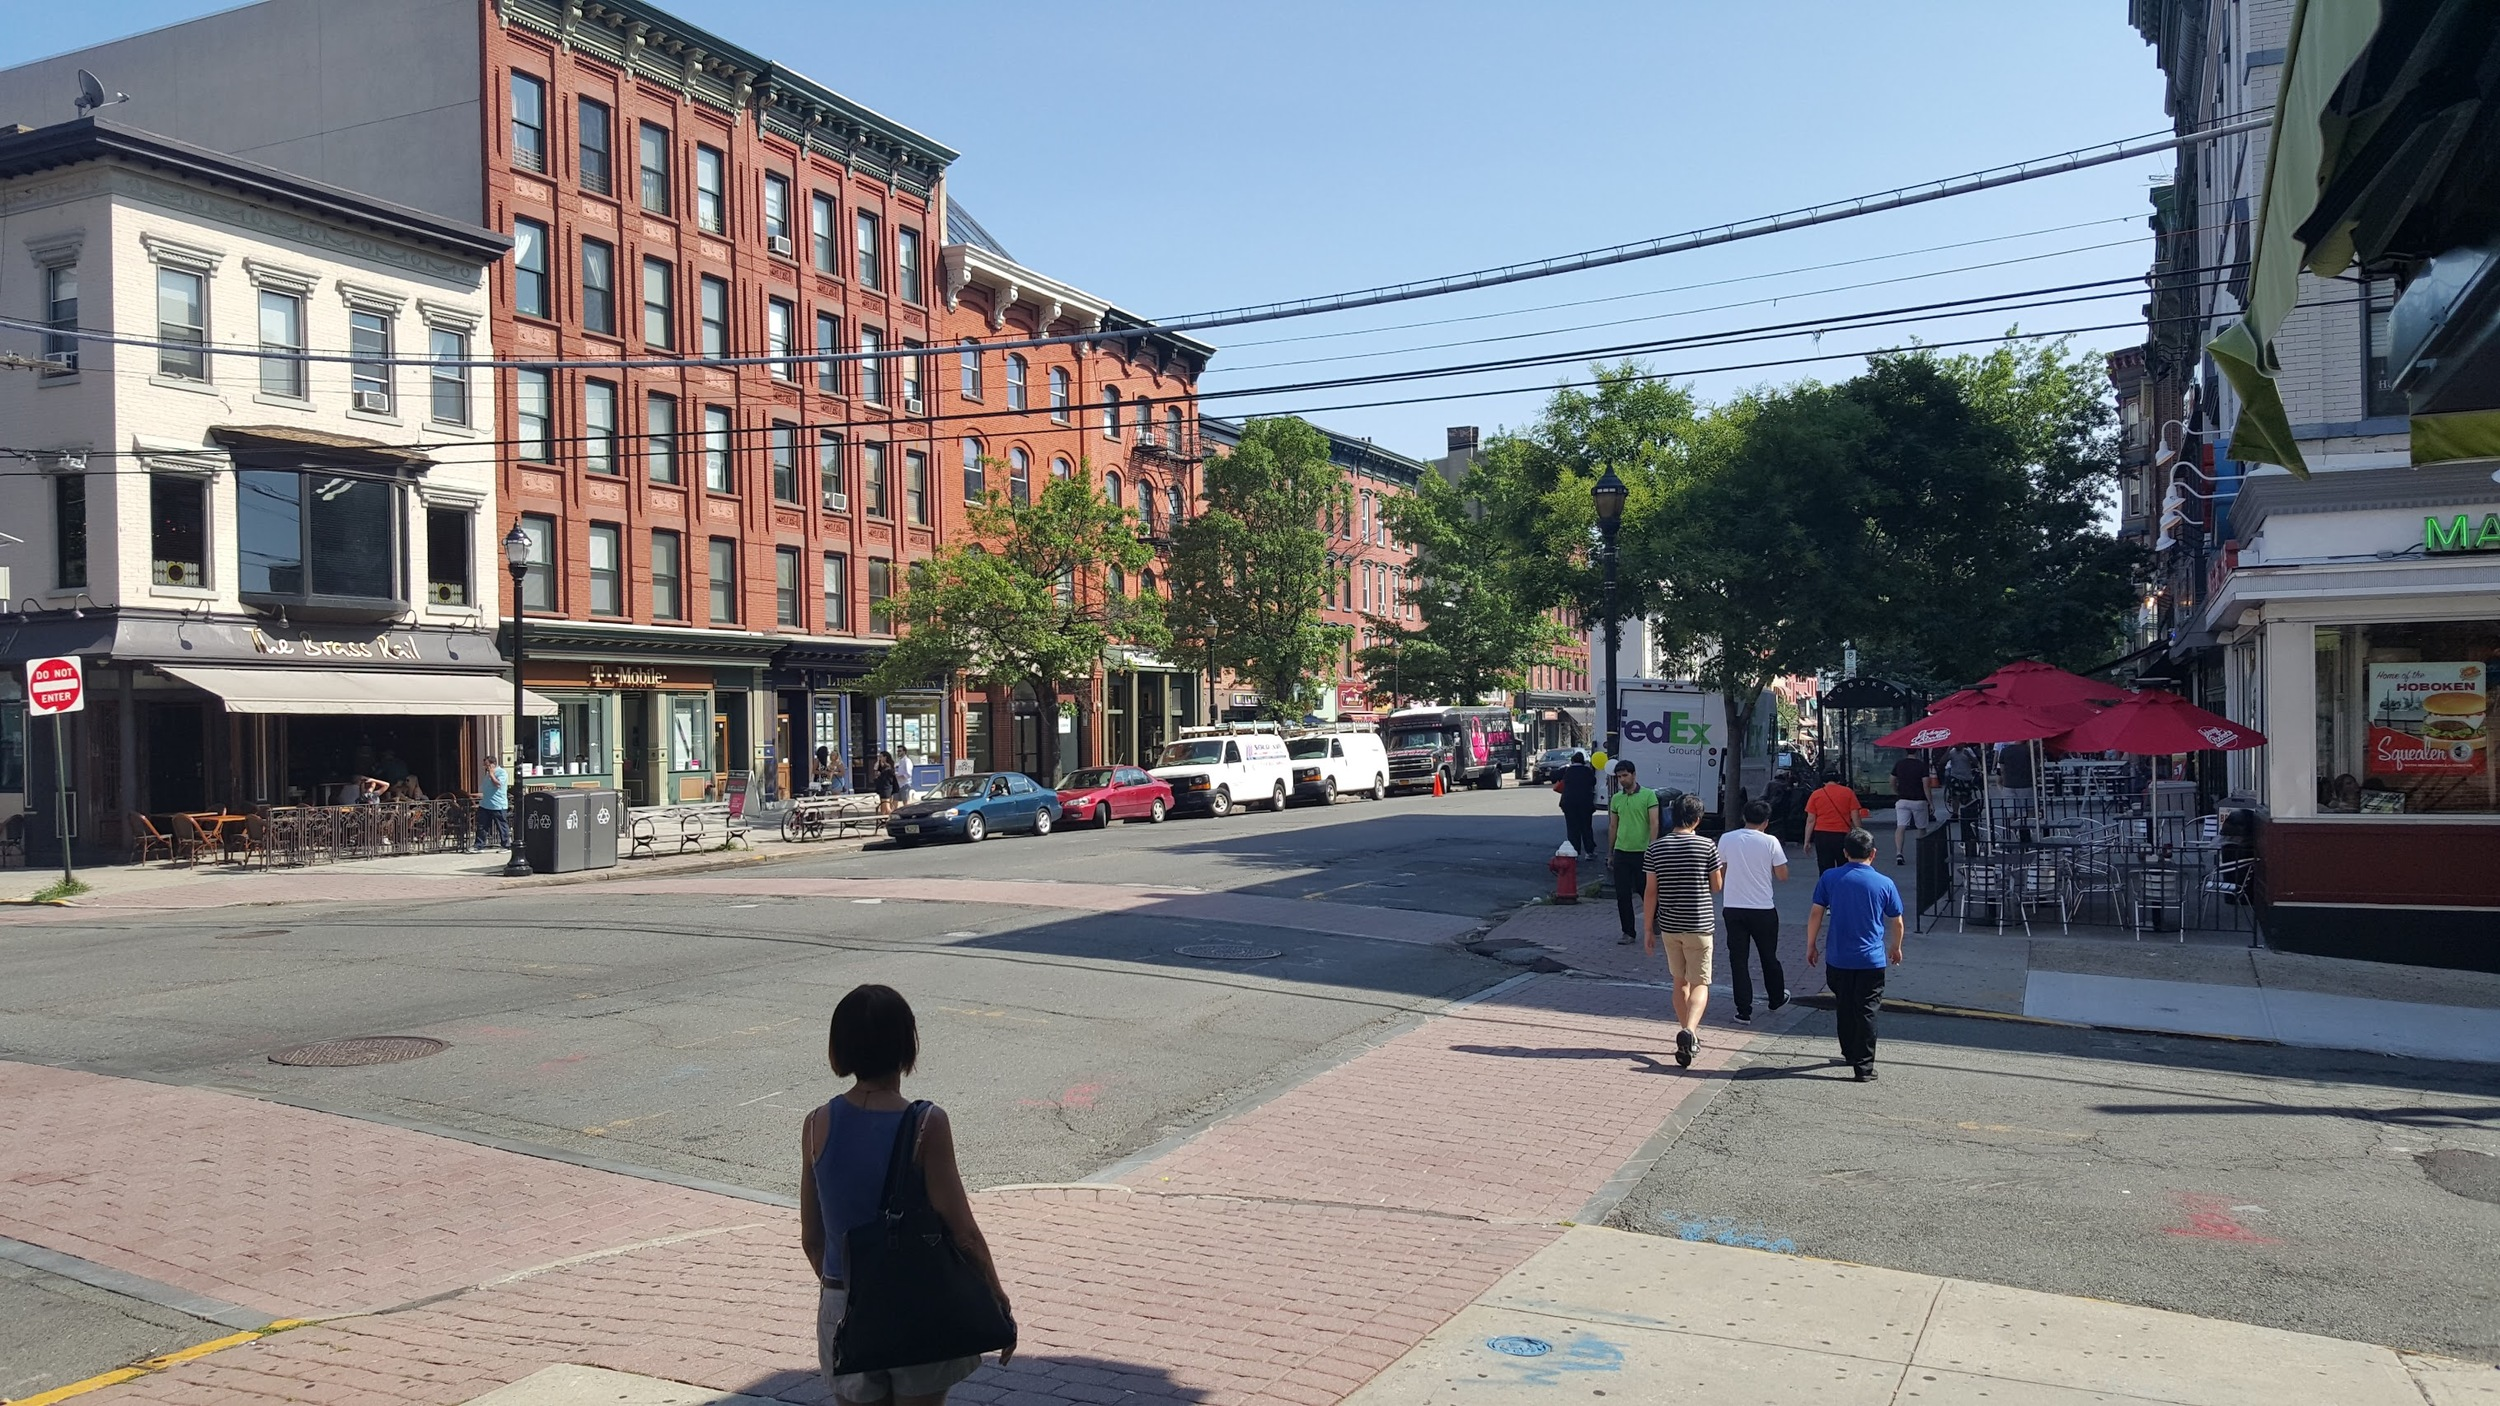 Jaywalking at the first opportunity in Hoboken.